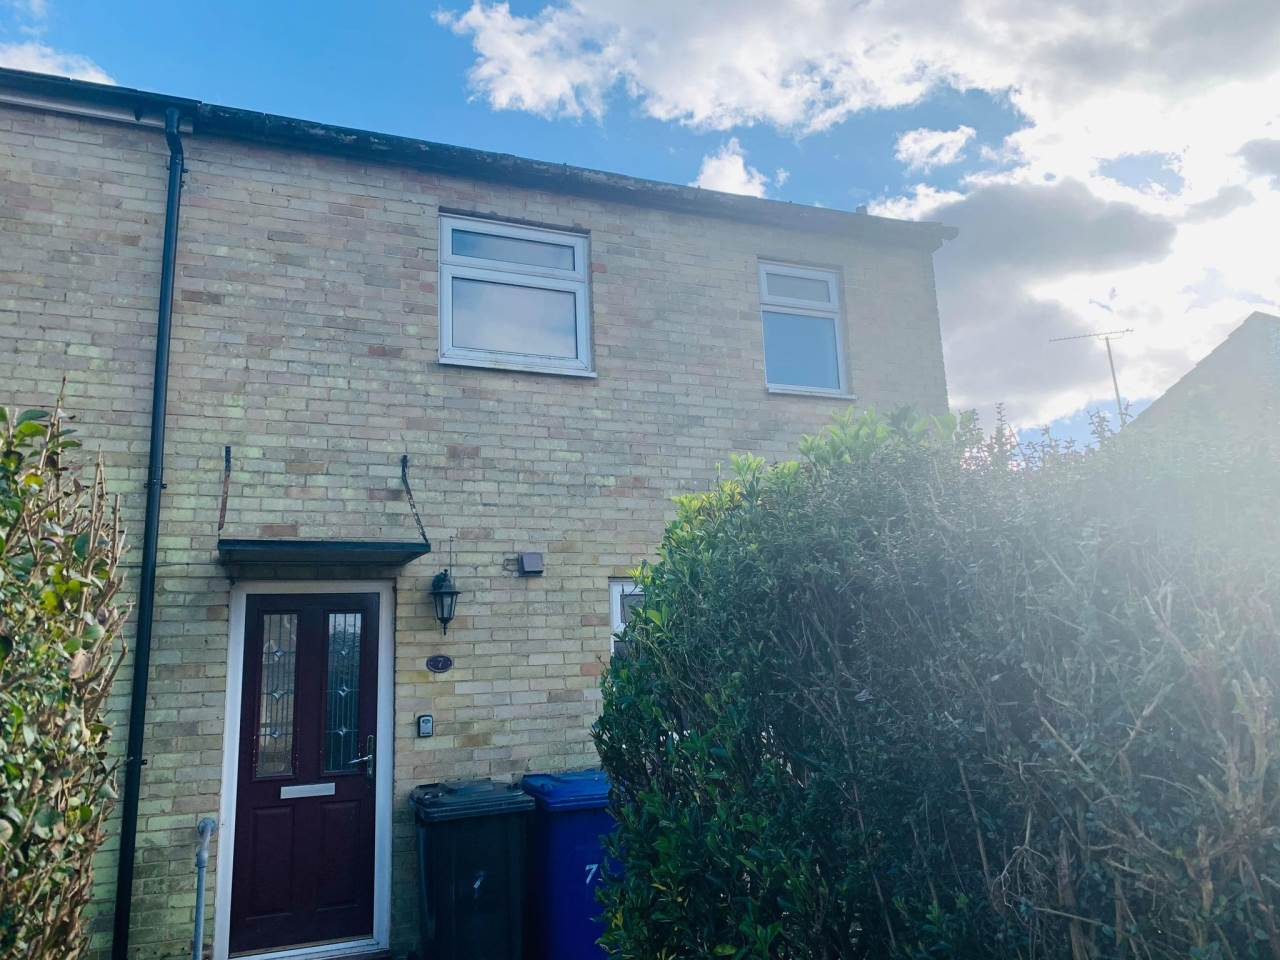 3 bed house to rent, CB9